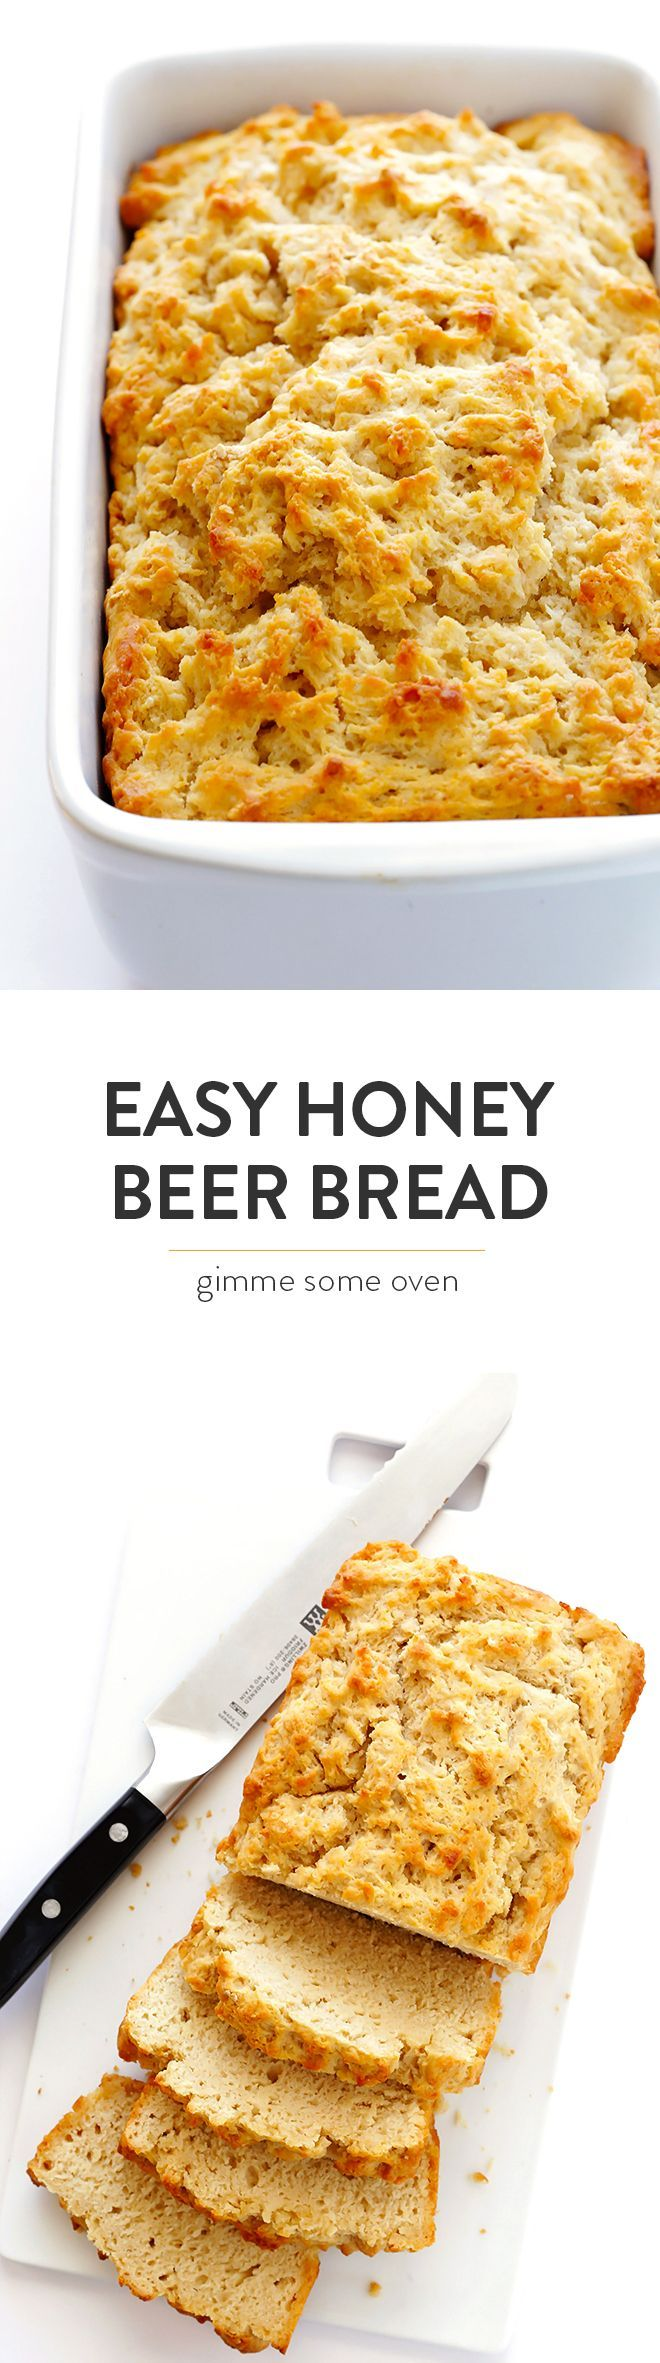 This recipe for Honey Beer Bread is my absolute FAVORITE. It's super easy to make, calls for just 6 ingredients, and tastes perfectly buttery, sweet and delicious!